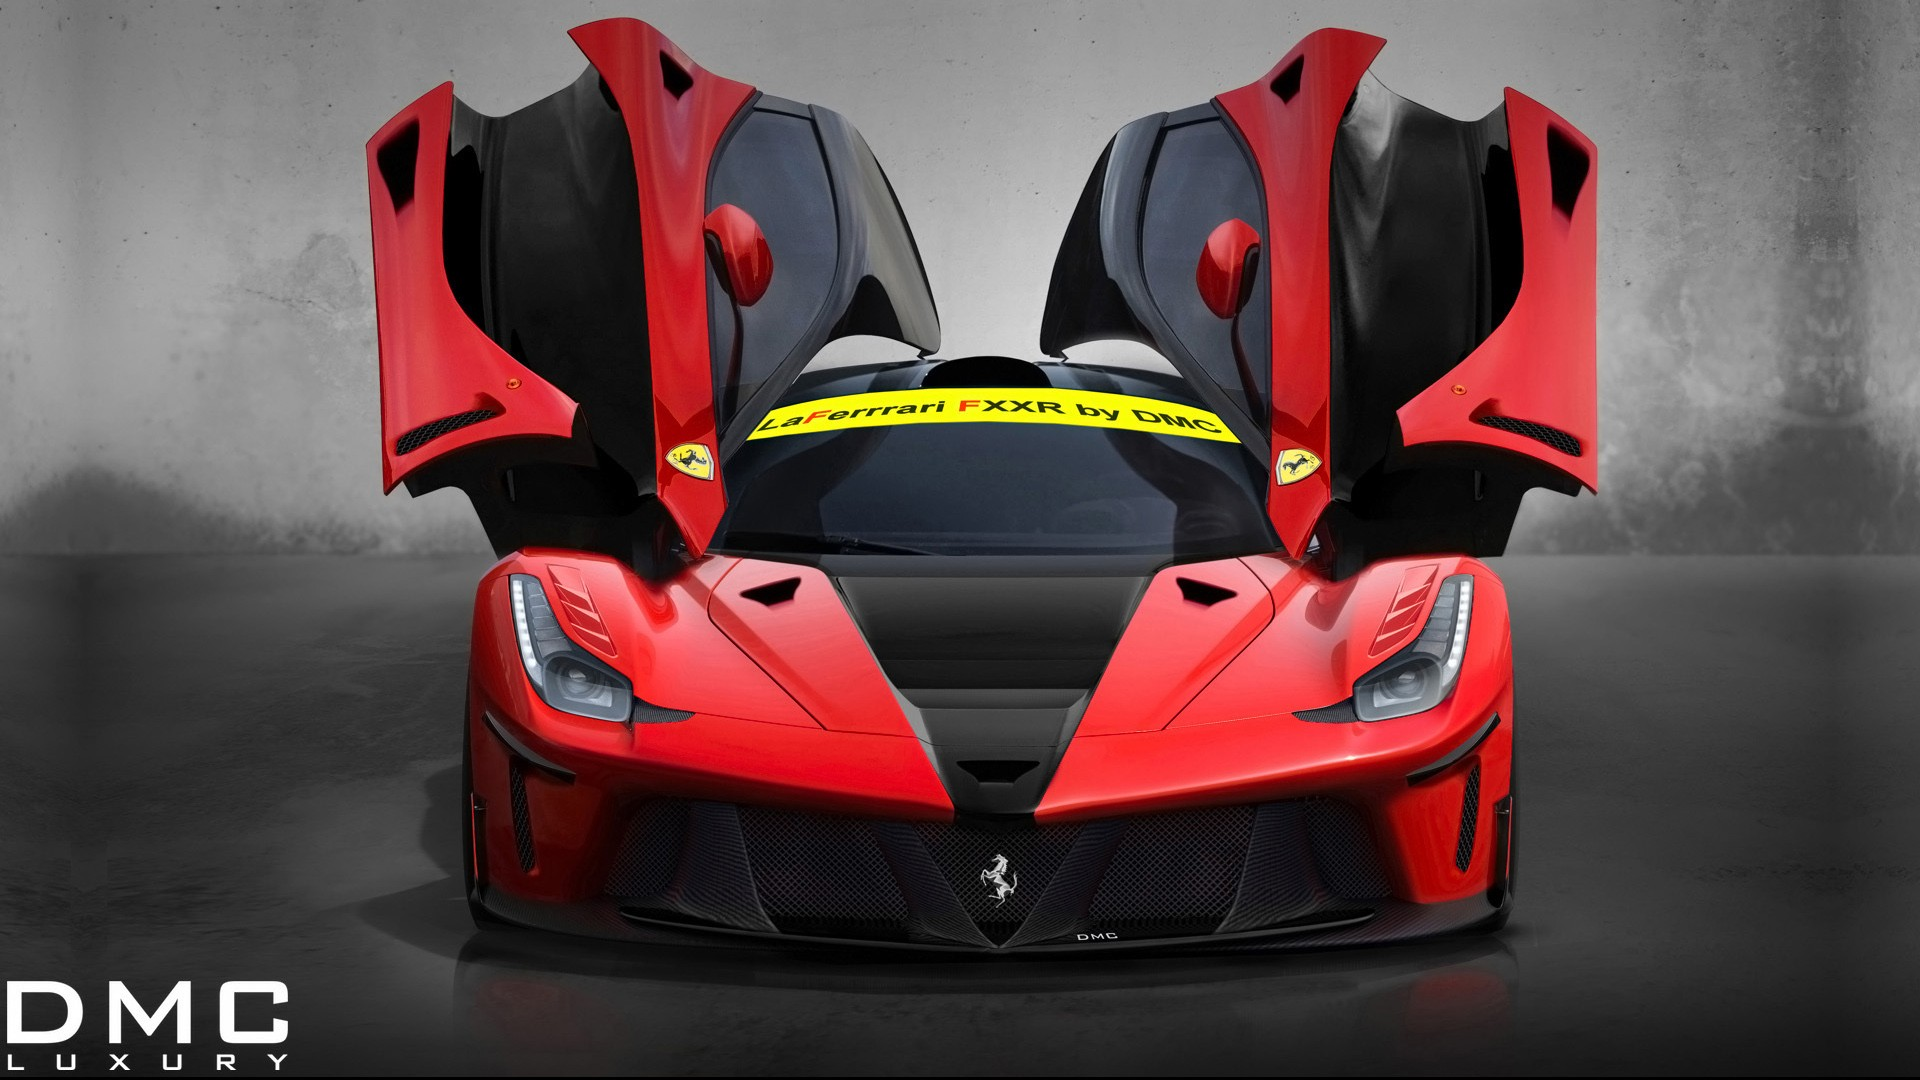 2014 Dmc Ferrari Laferrari Fxxr 3 Wallpaper Hd Car